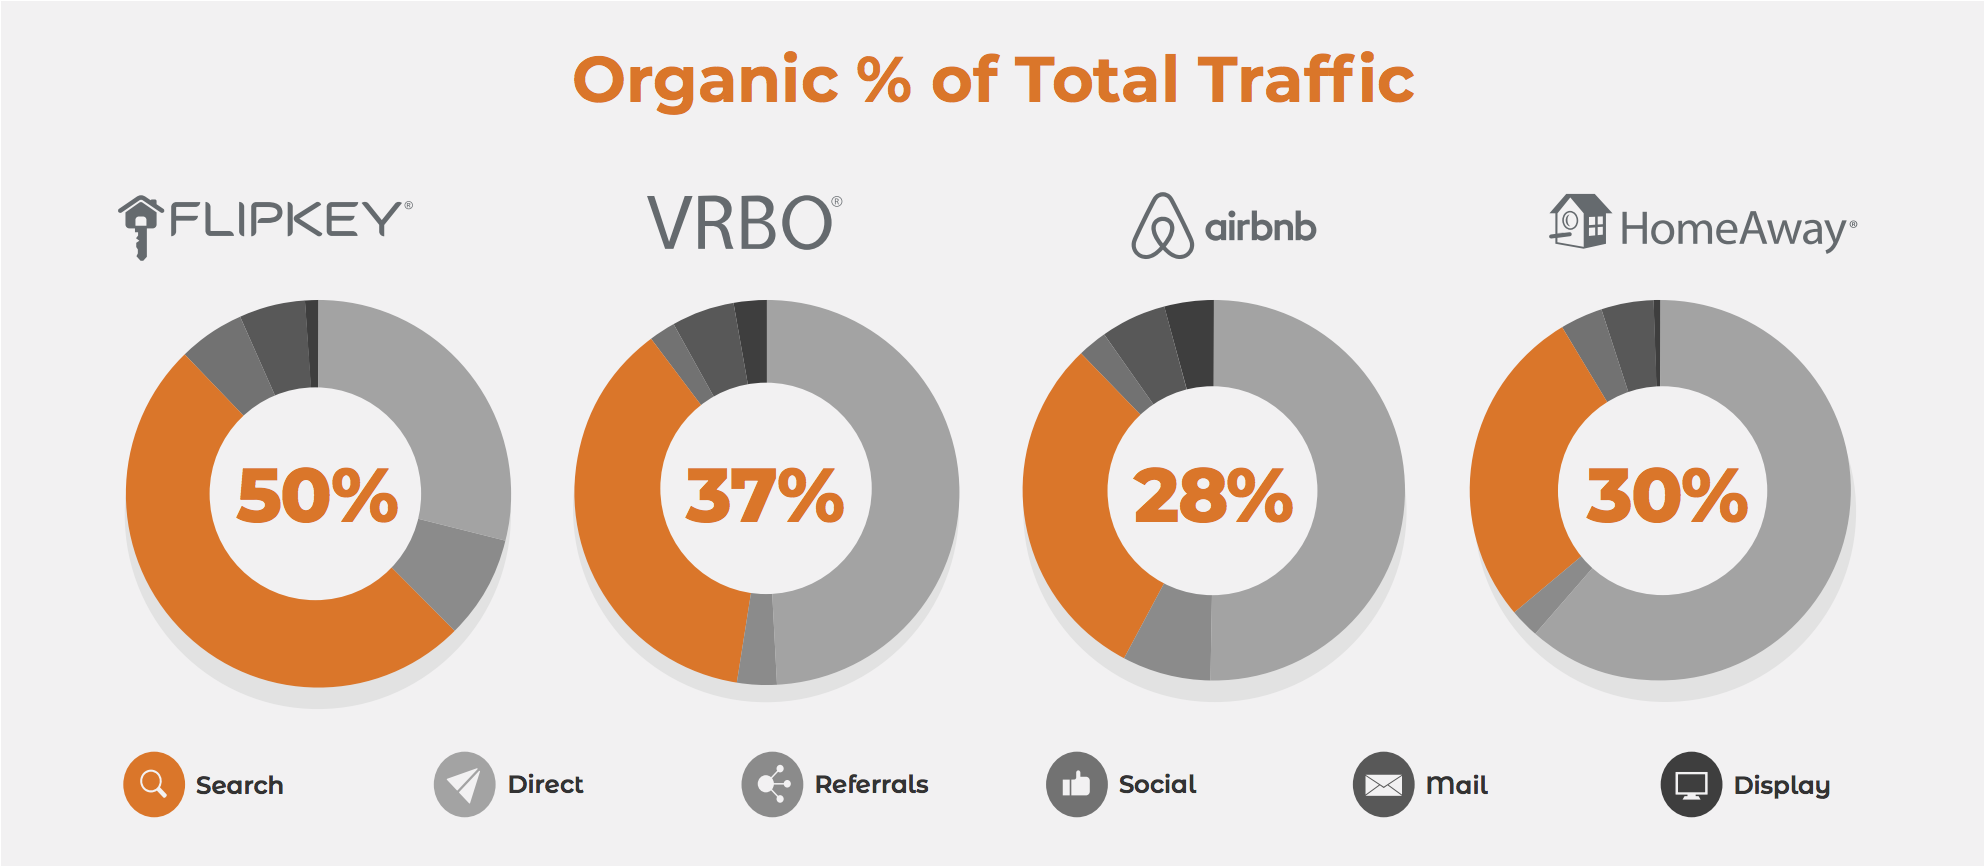 Organic-percentage-of-total-traffic-for-short-term-rental-listing-sites